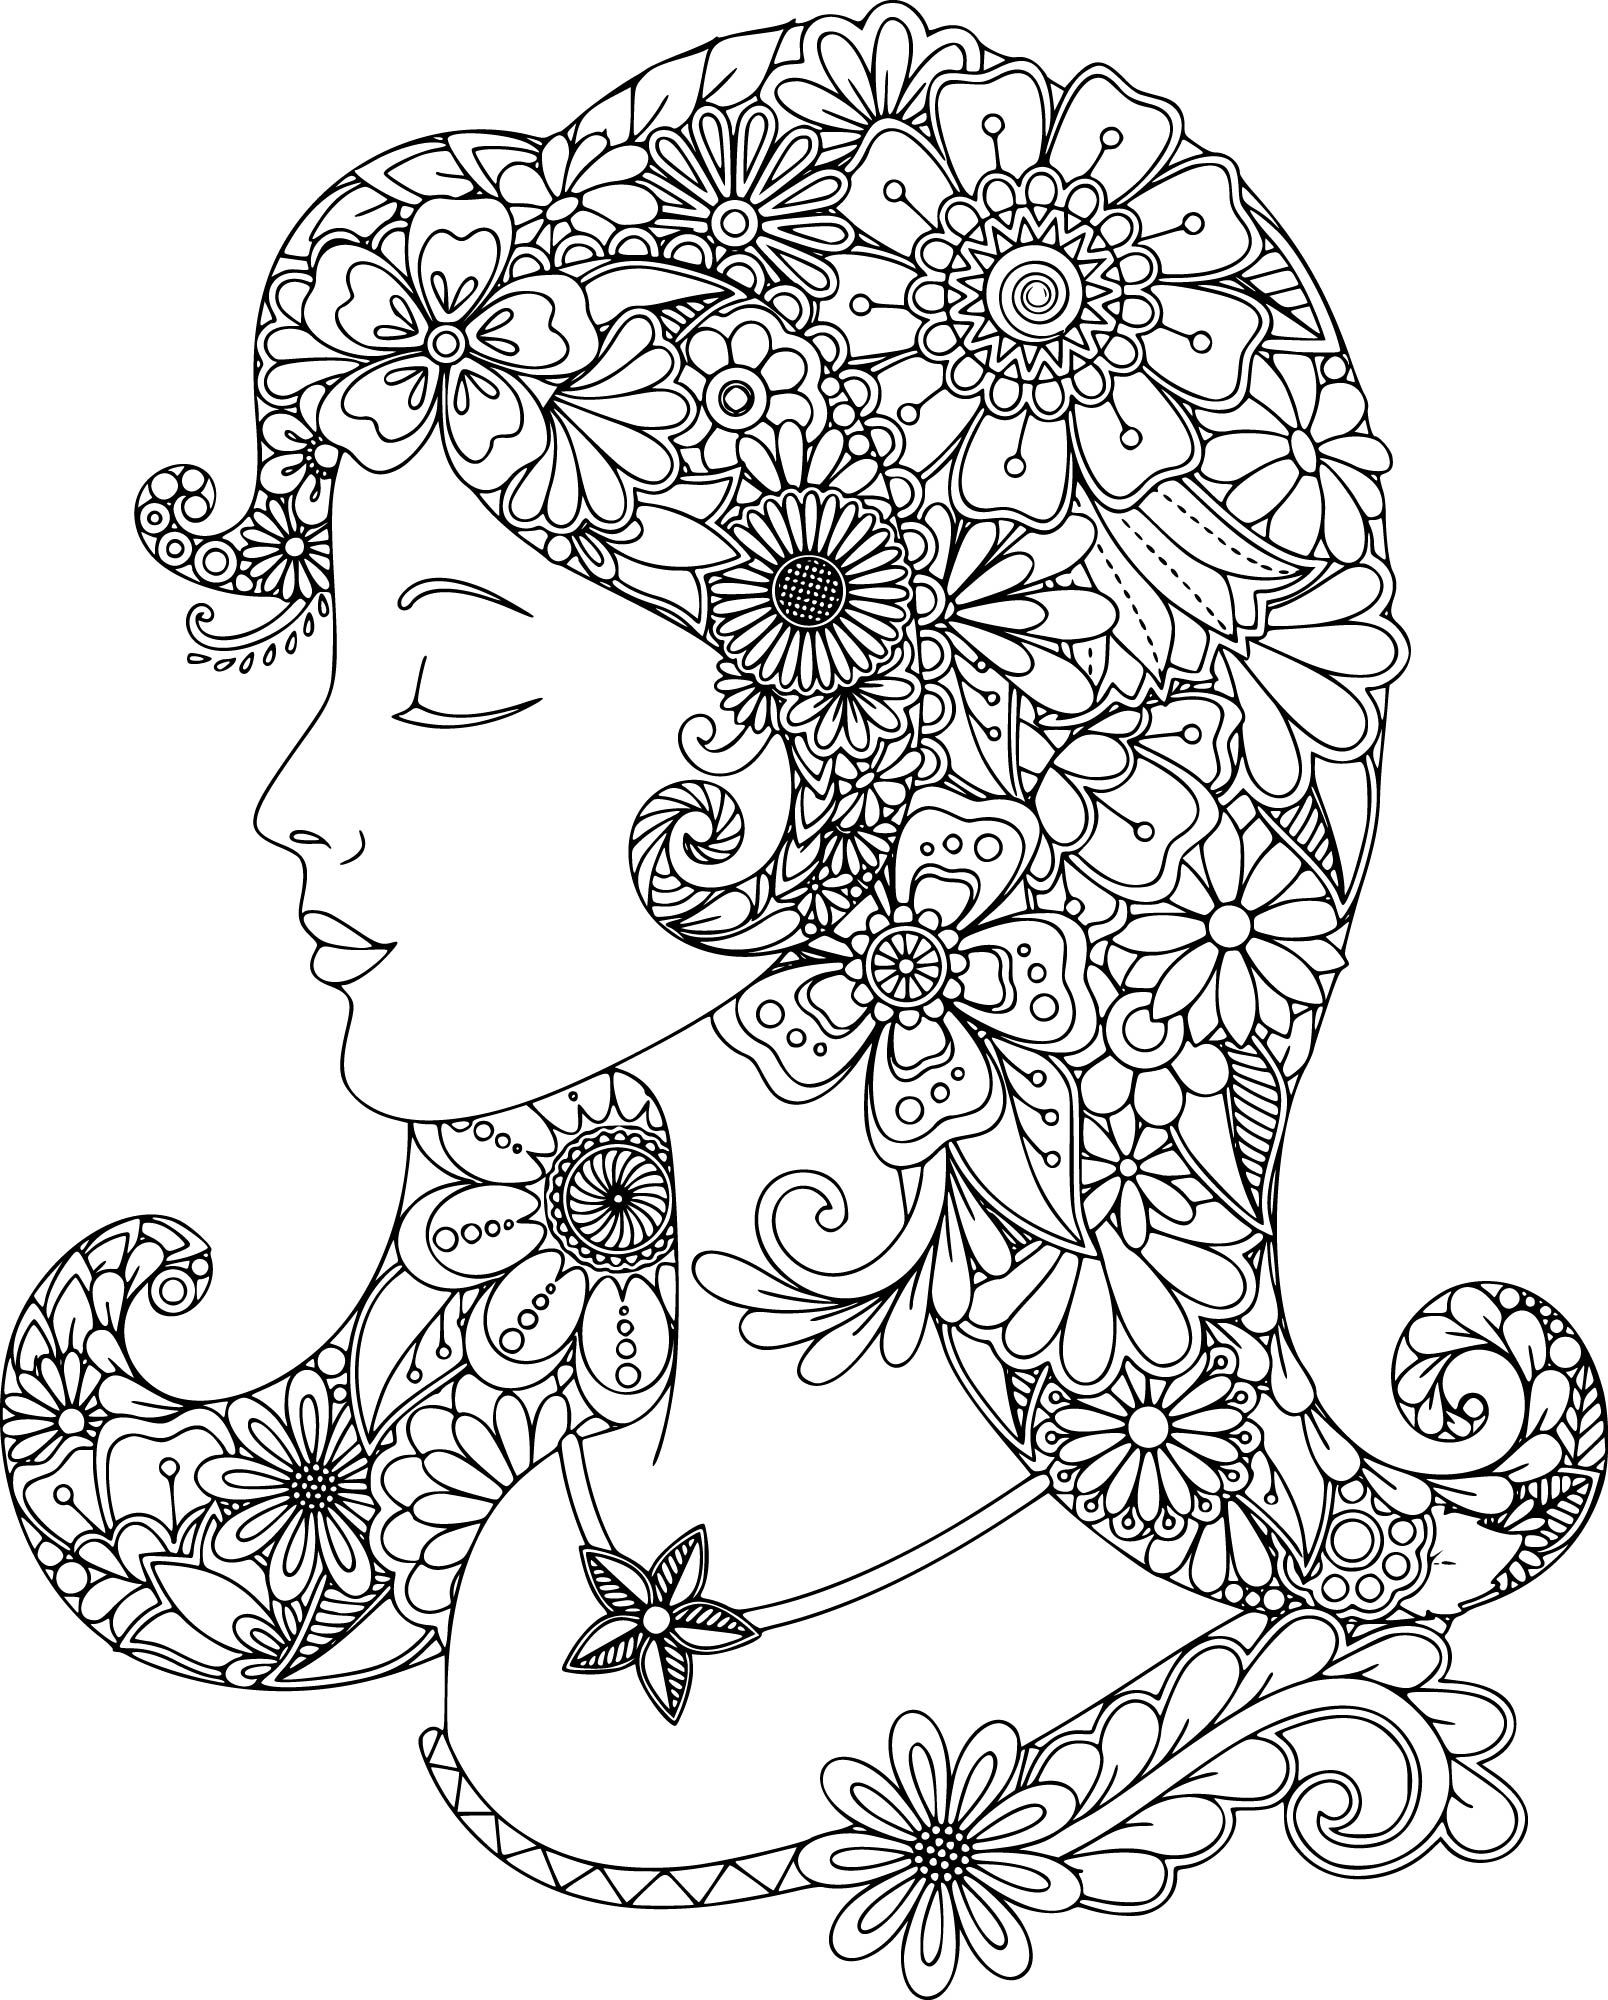 1608x2000 Lovely Lady Coloring Page For You To Color With Adult Coloring